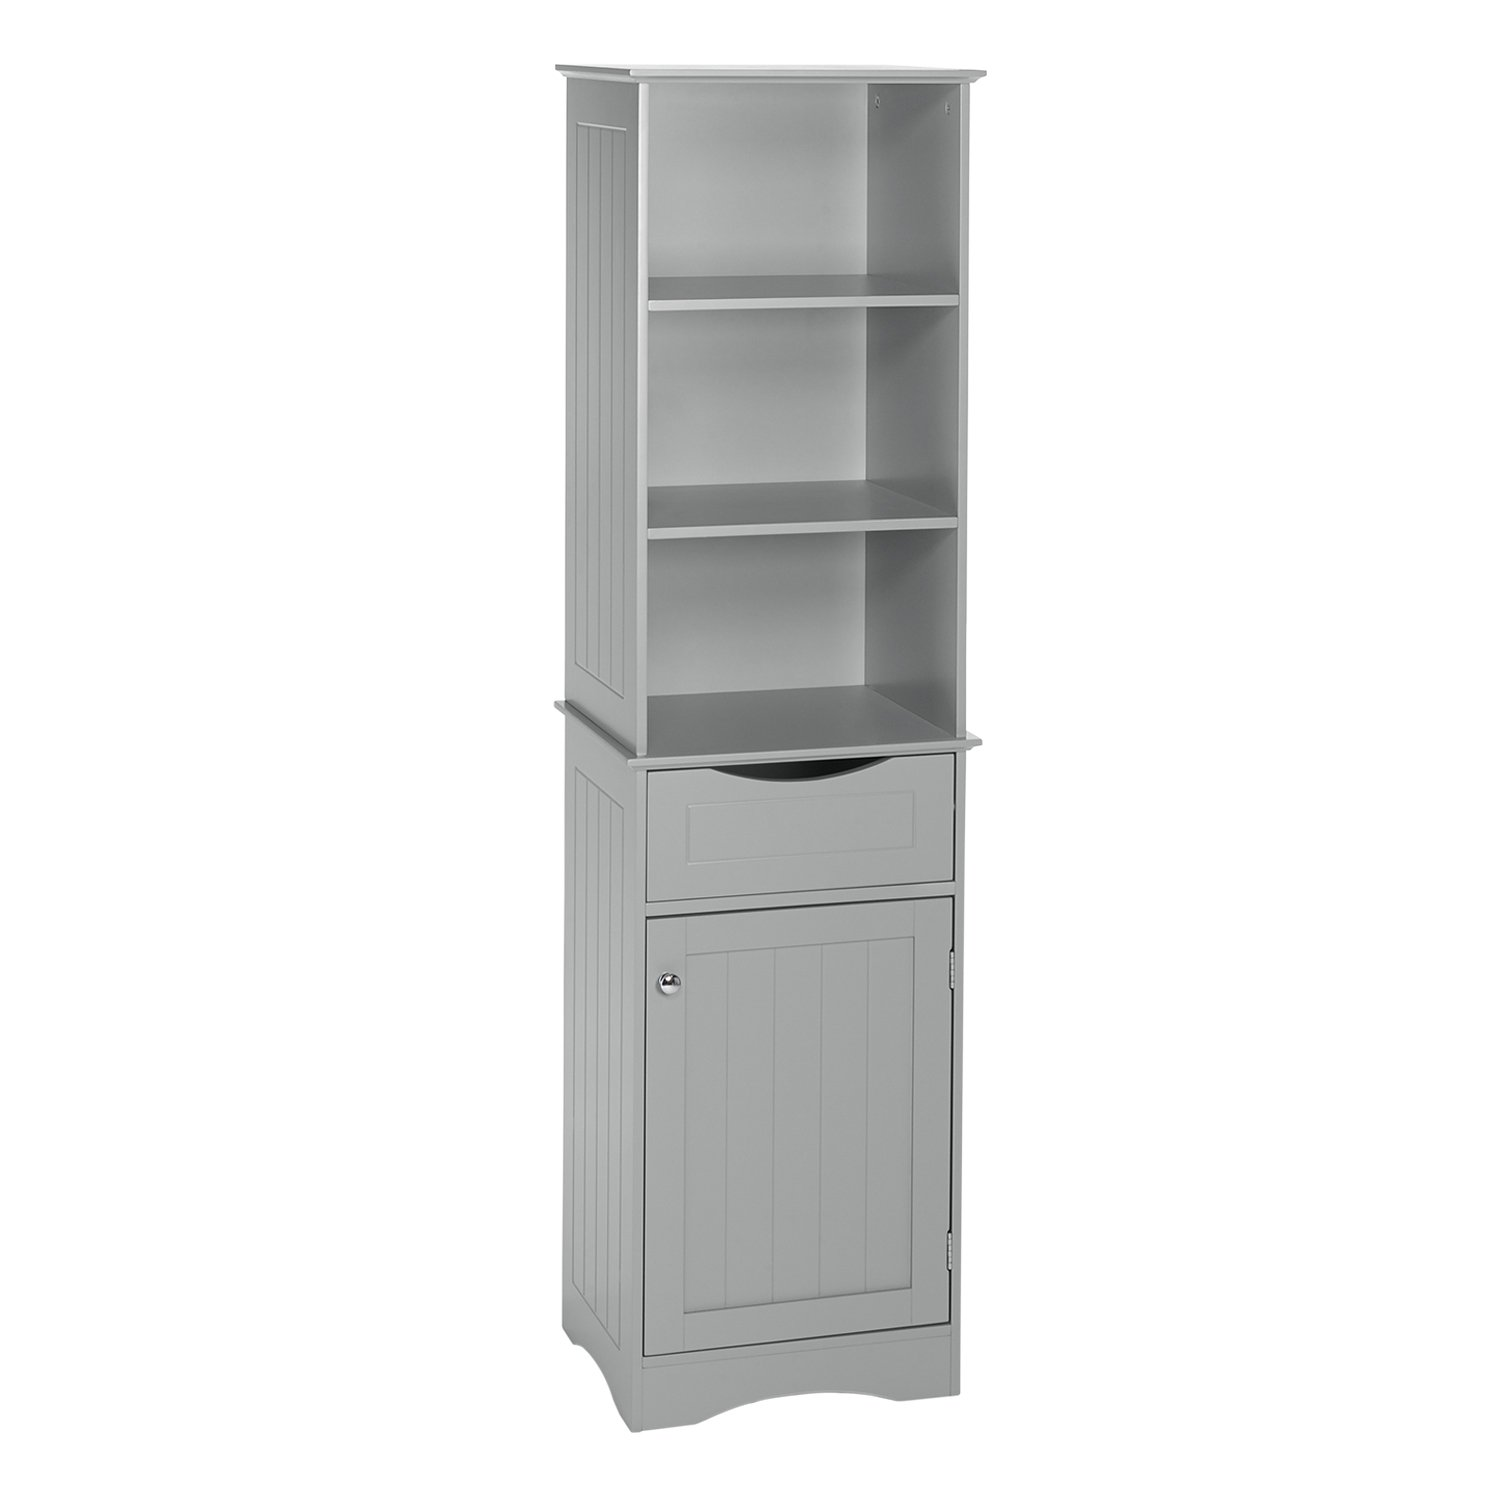 size click for tall base center here rail a quality cabinet full door omitting from knowledge the image higher